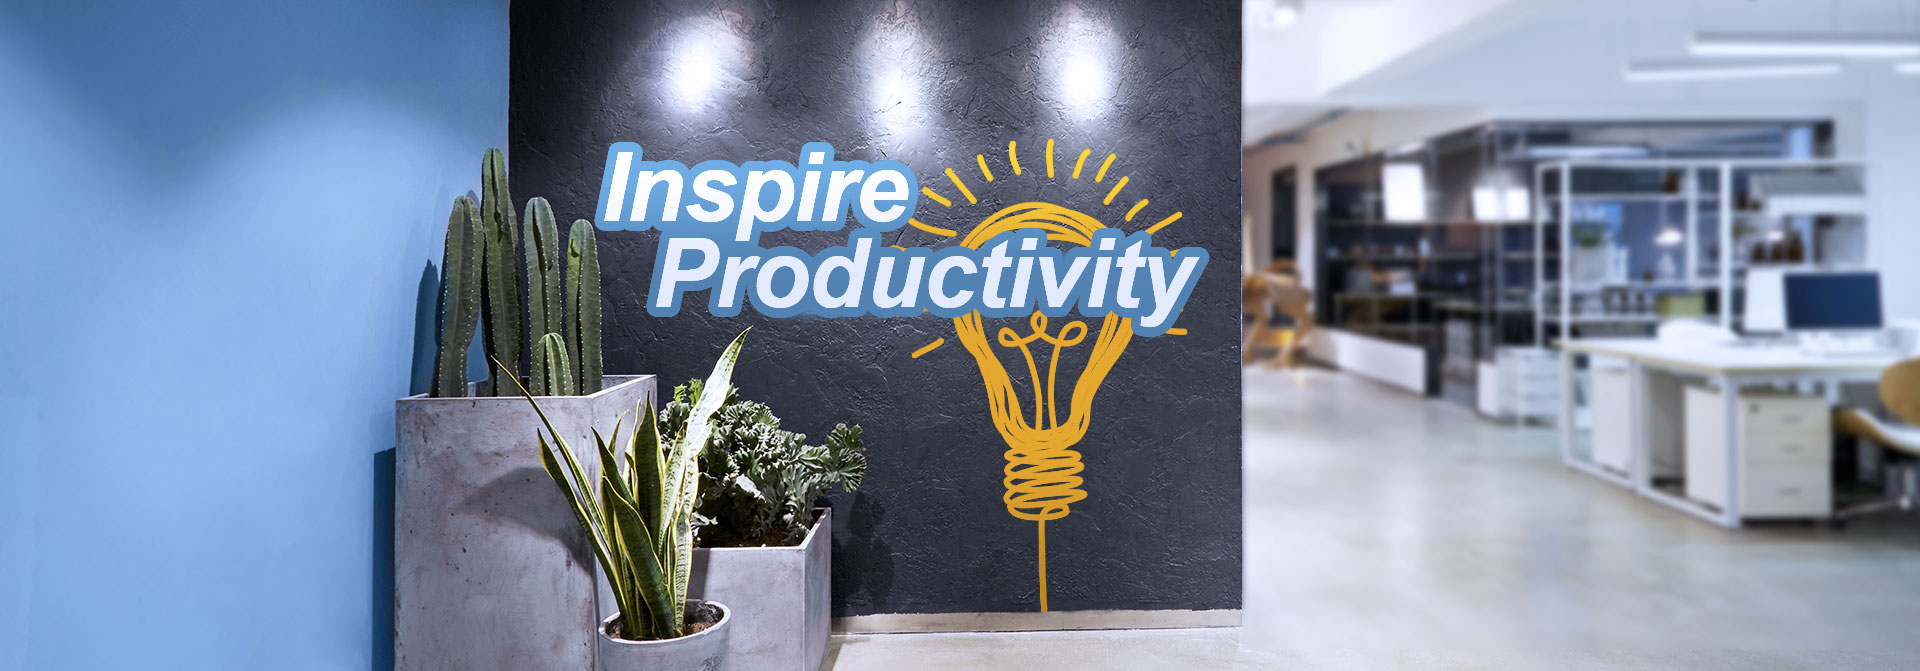 Inspire Productivity wall decal for office design